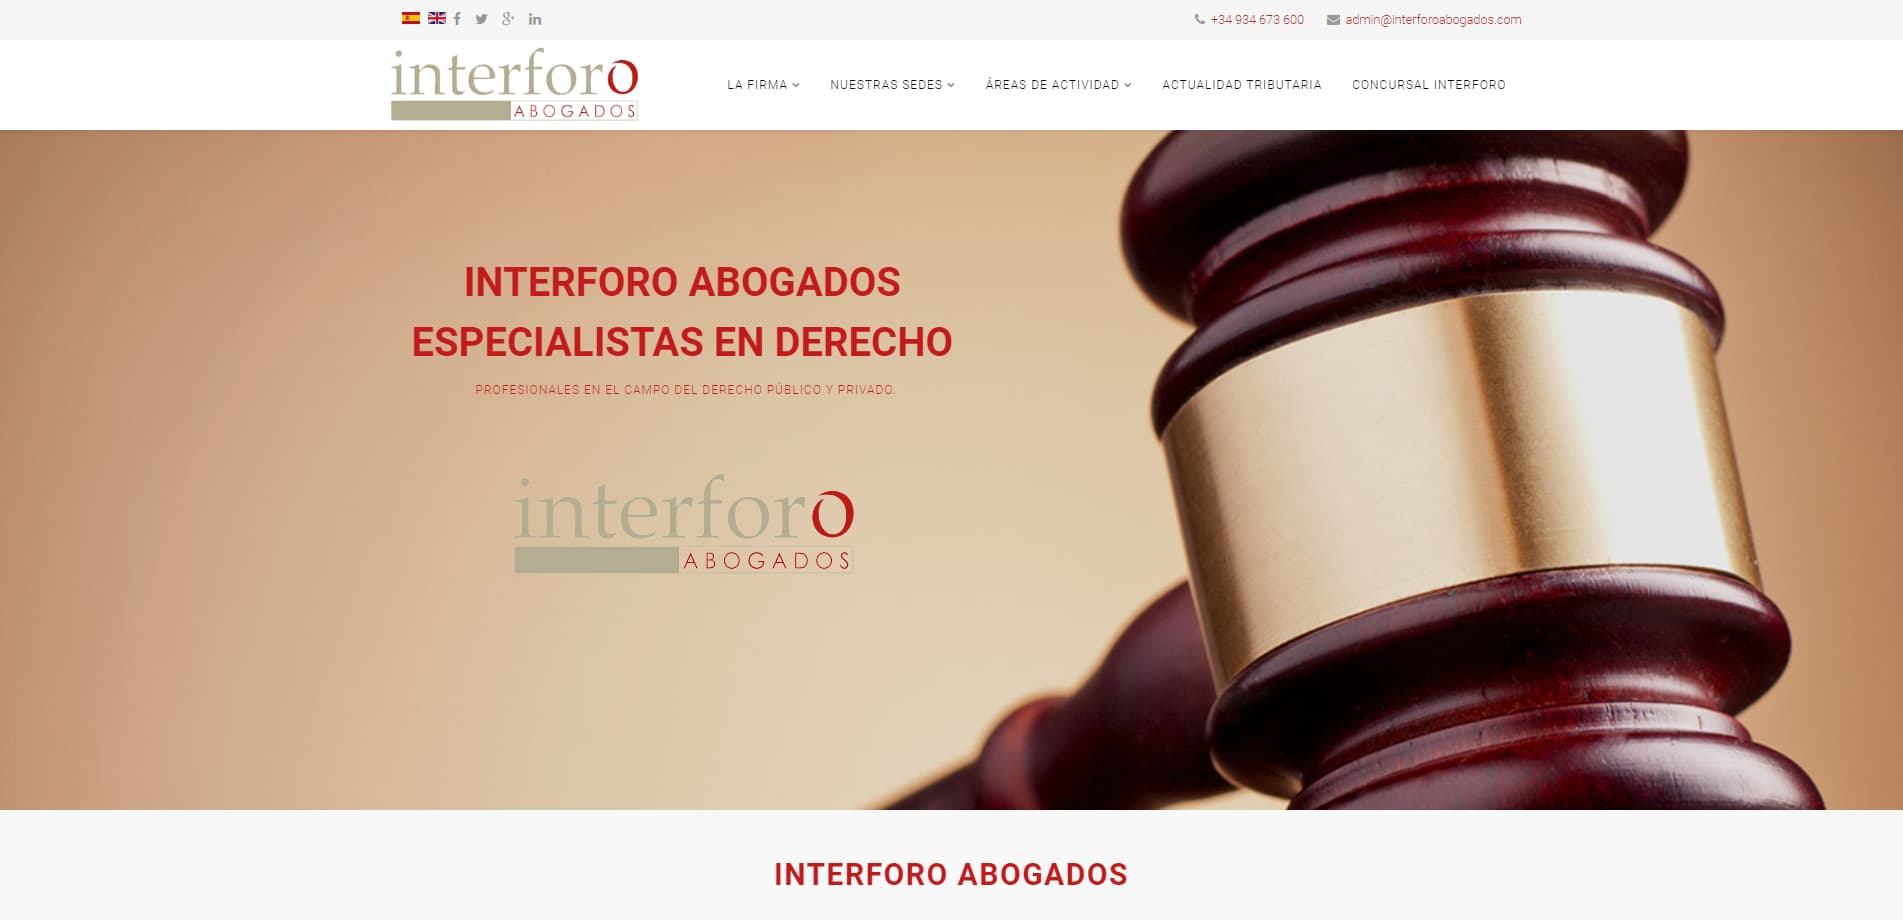 Interforo Abogados